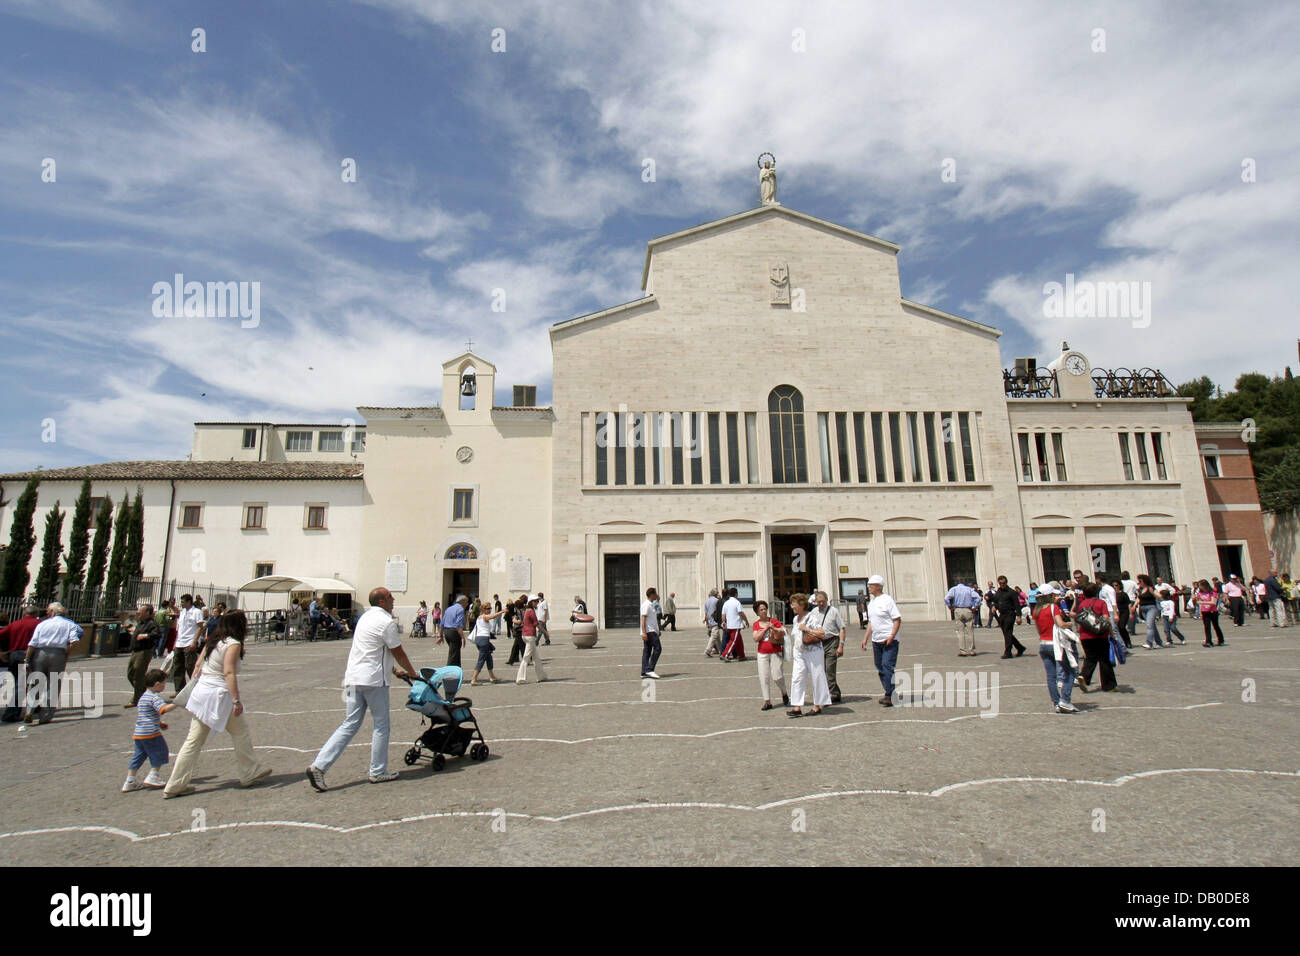 The picture shows the abbey of San Giovanni Rotondo, which was the home of the Italian saint Padre Pio since 1916 - Stock Image